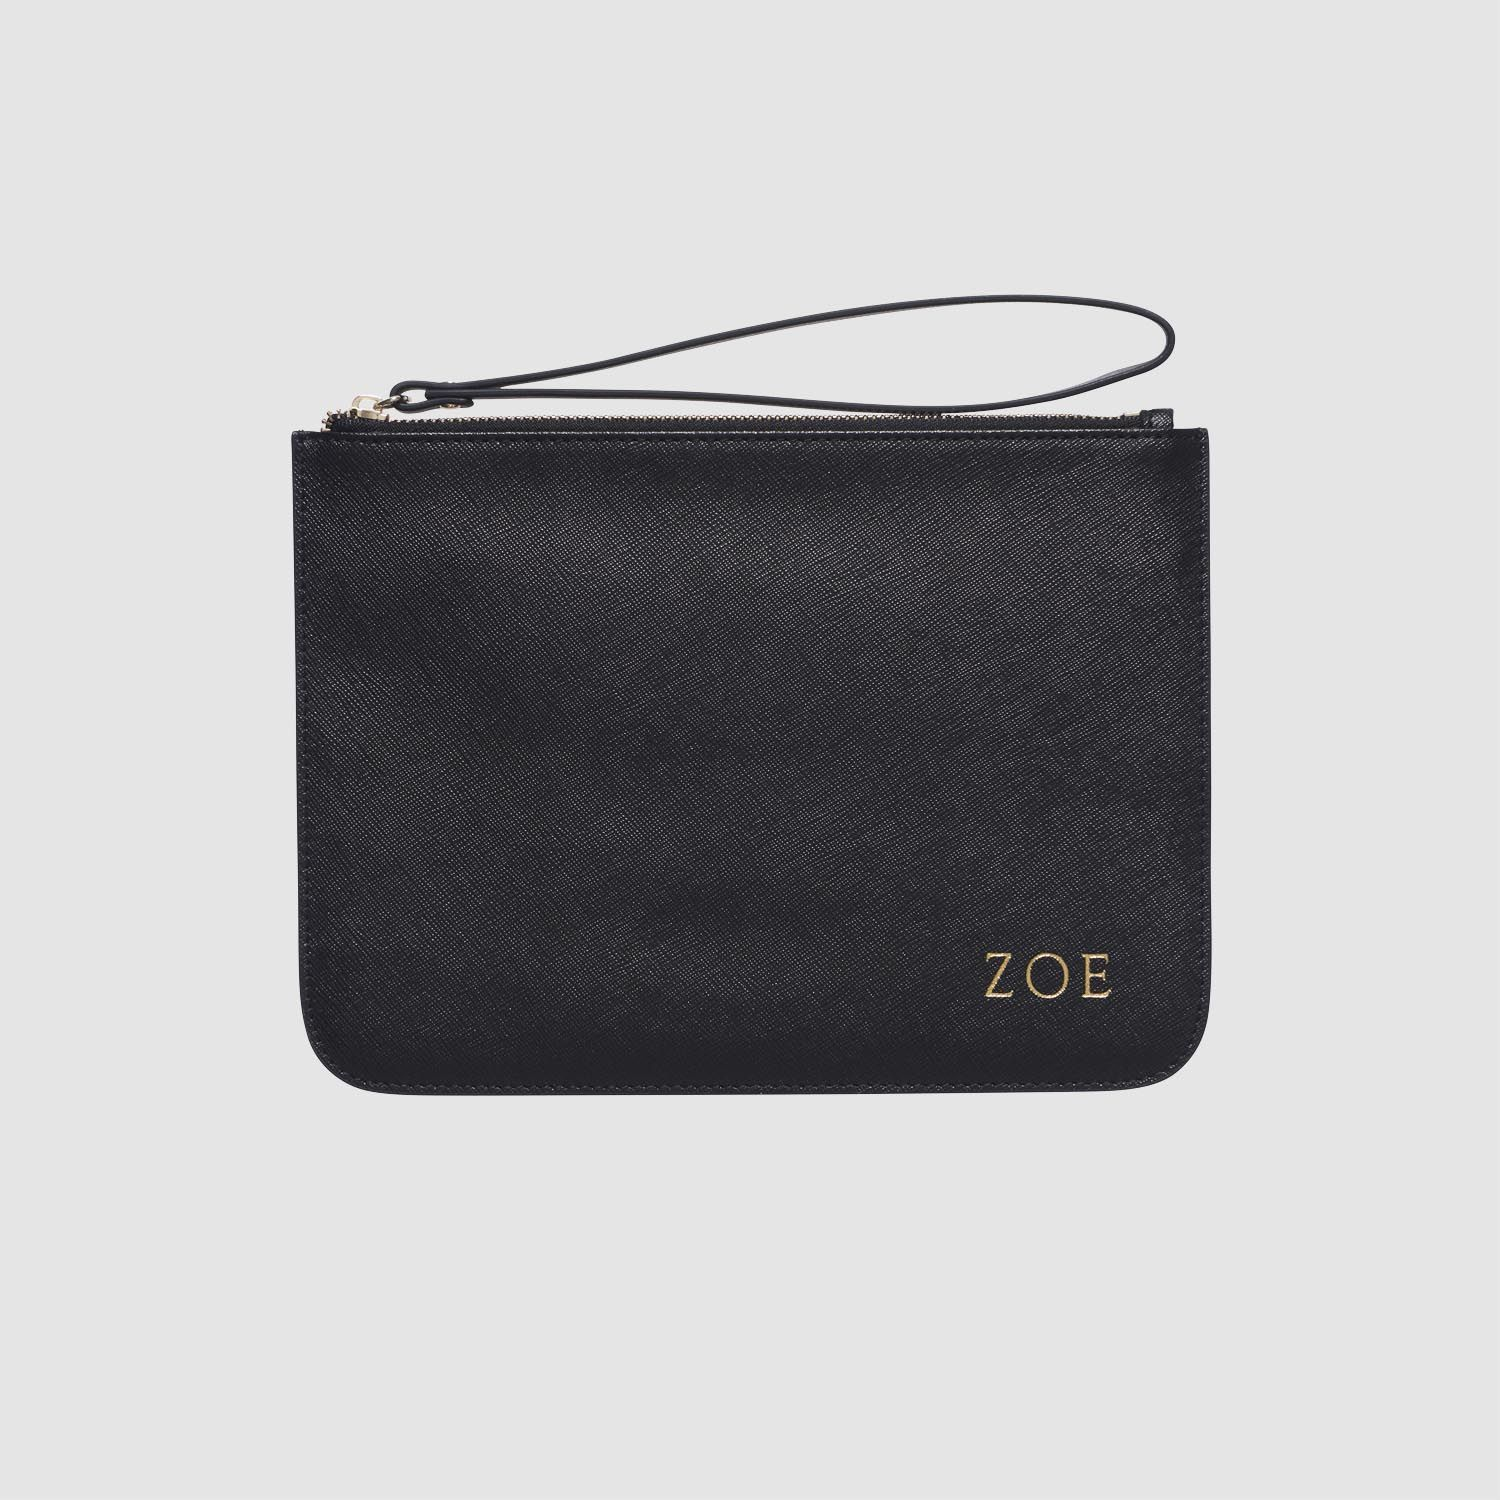 Black pouch with wrist strap wrist strap pouch leather